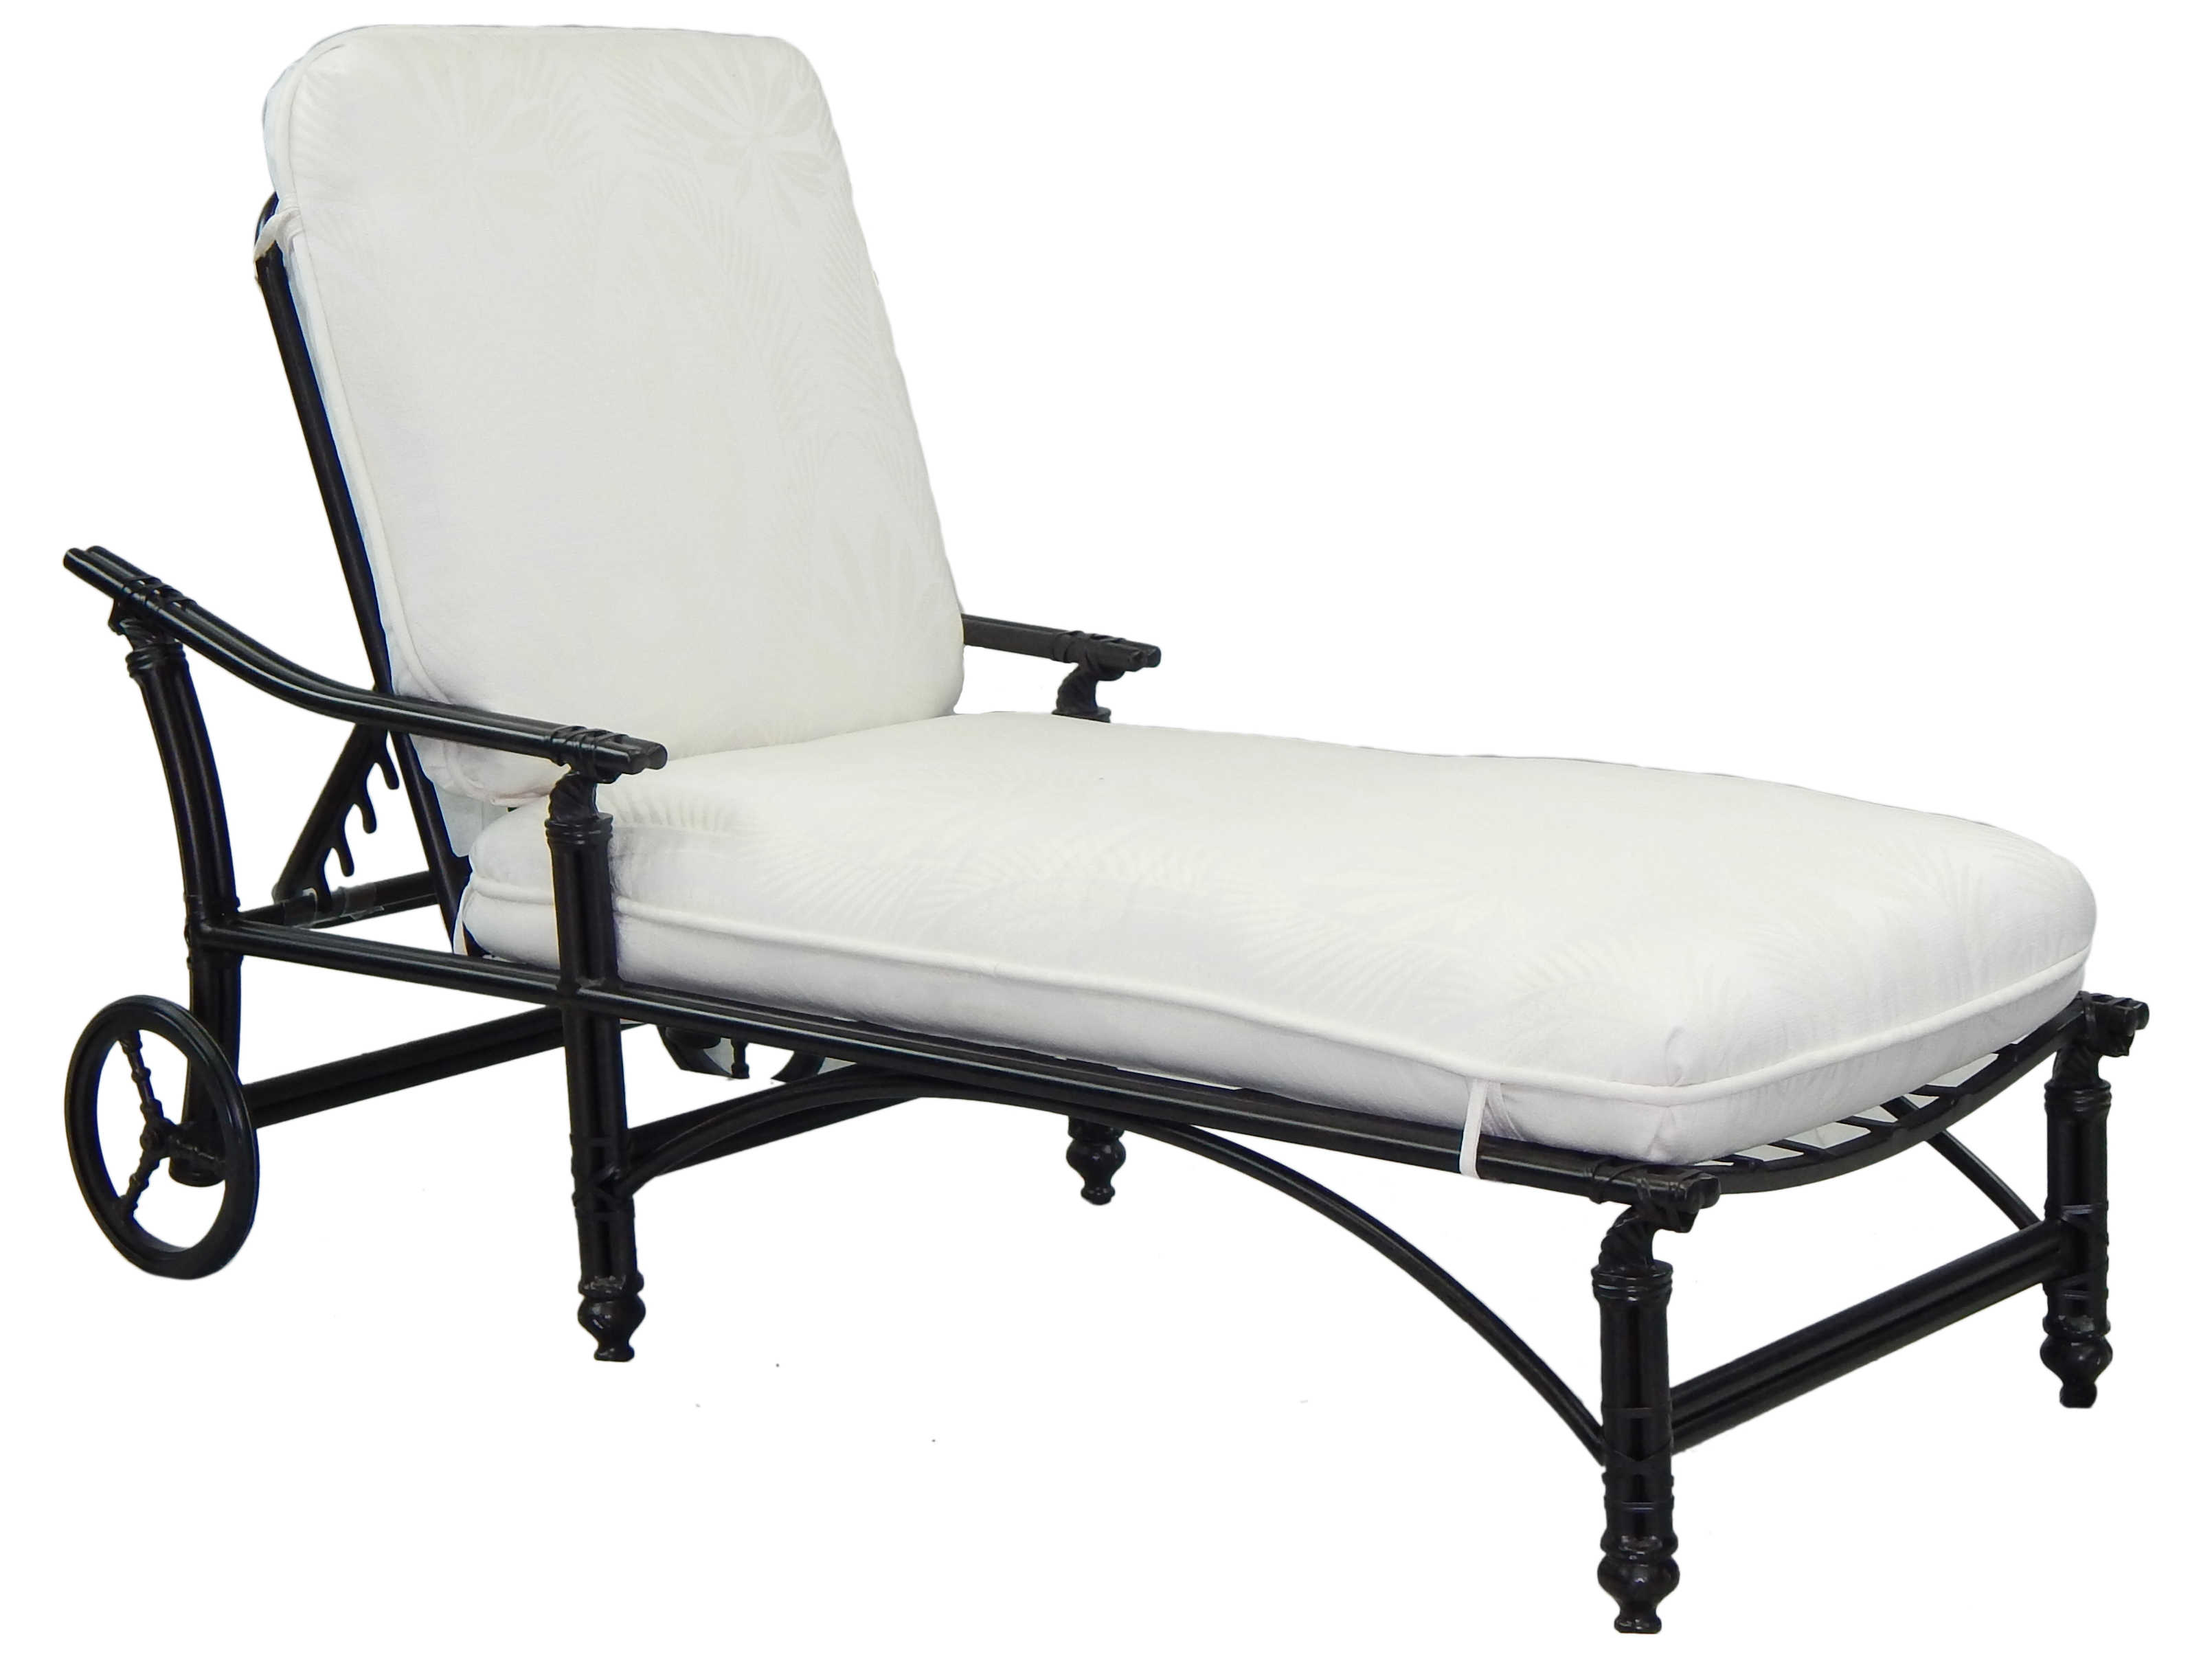 Castelle coco isle cushion cast aluminum adjustable chaise for Cast aluminum chaise lounge